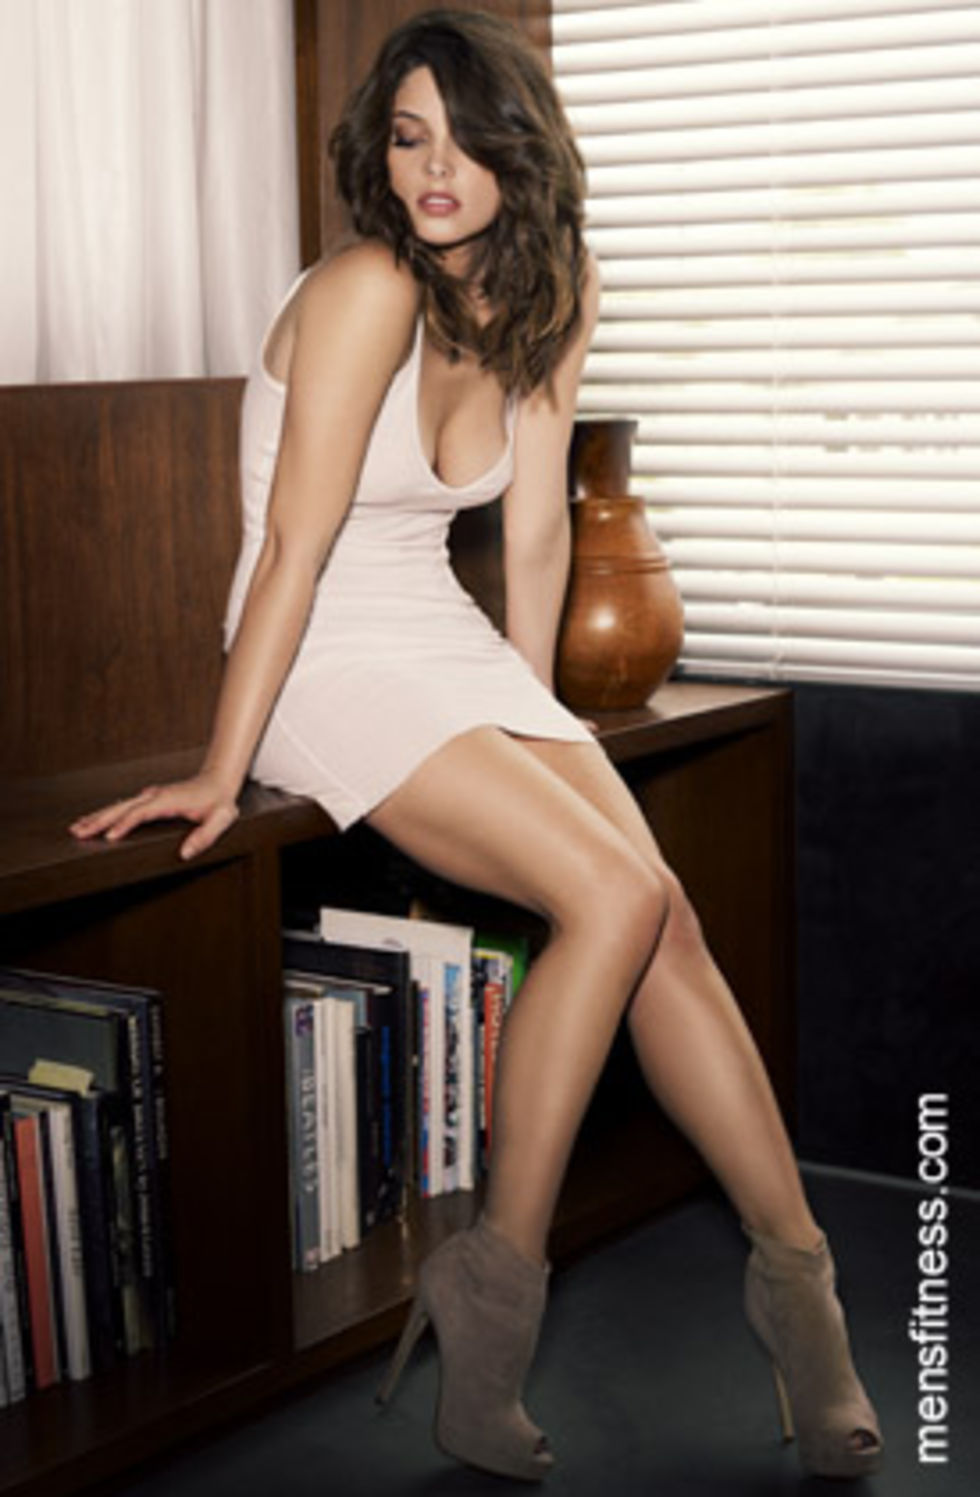 ashley-greene-mens-fitness-magazine-november-2009-lq-01